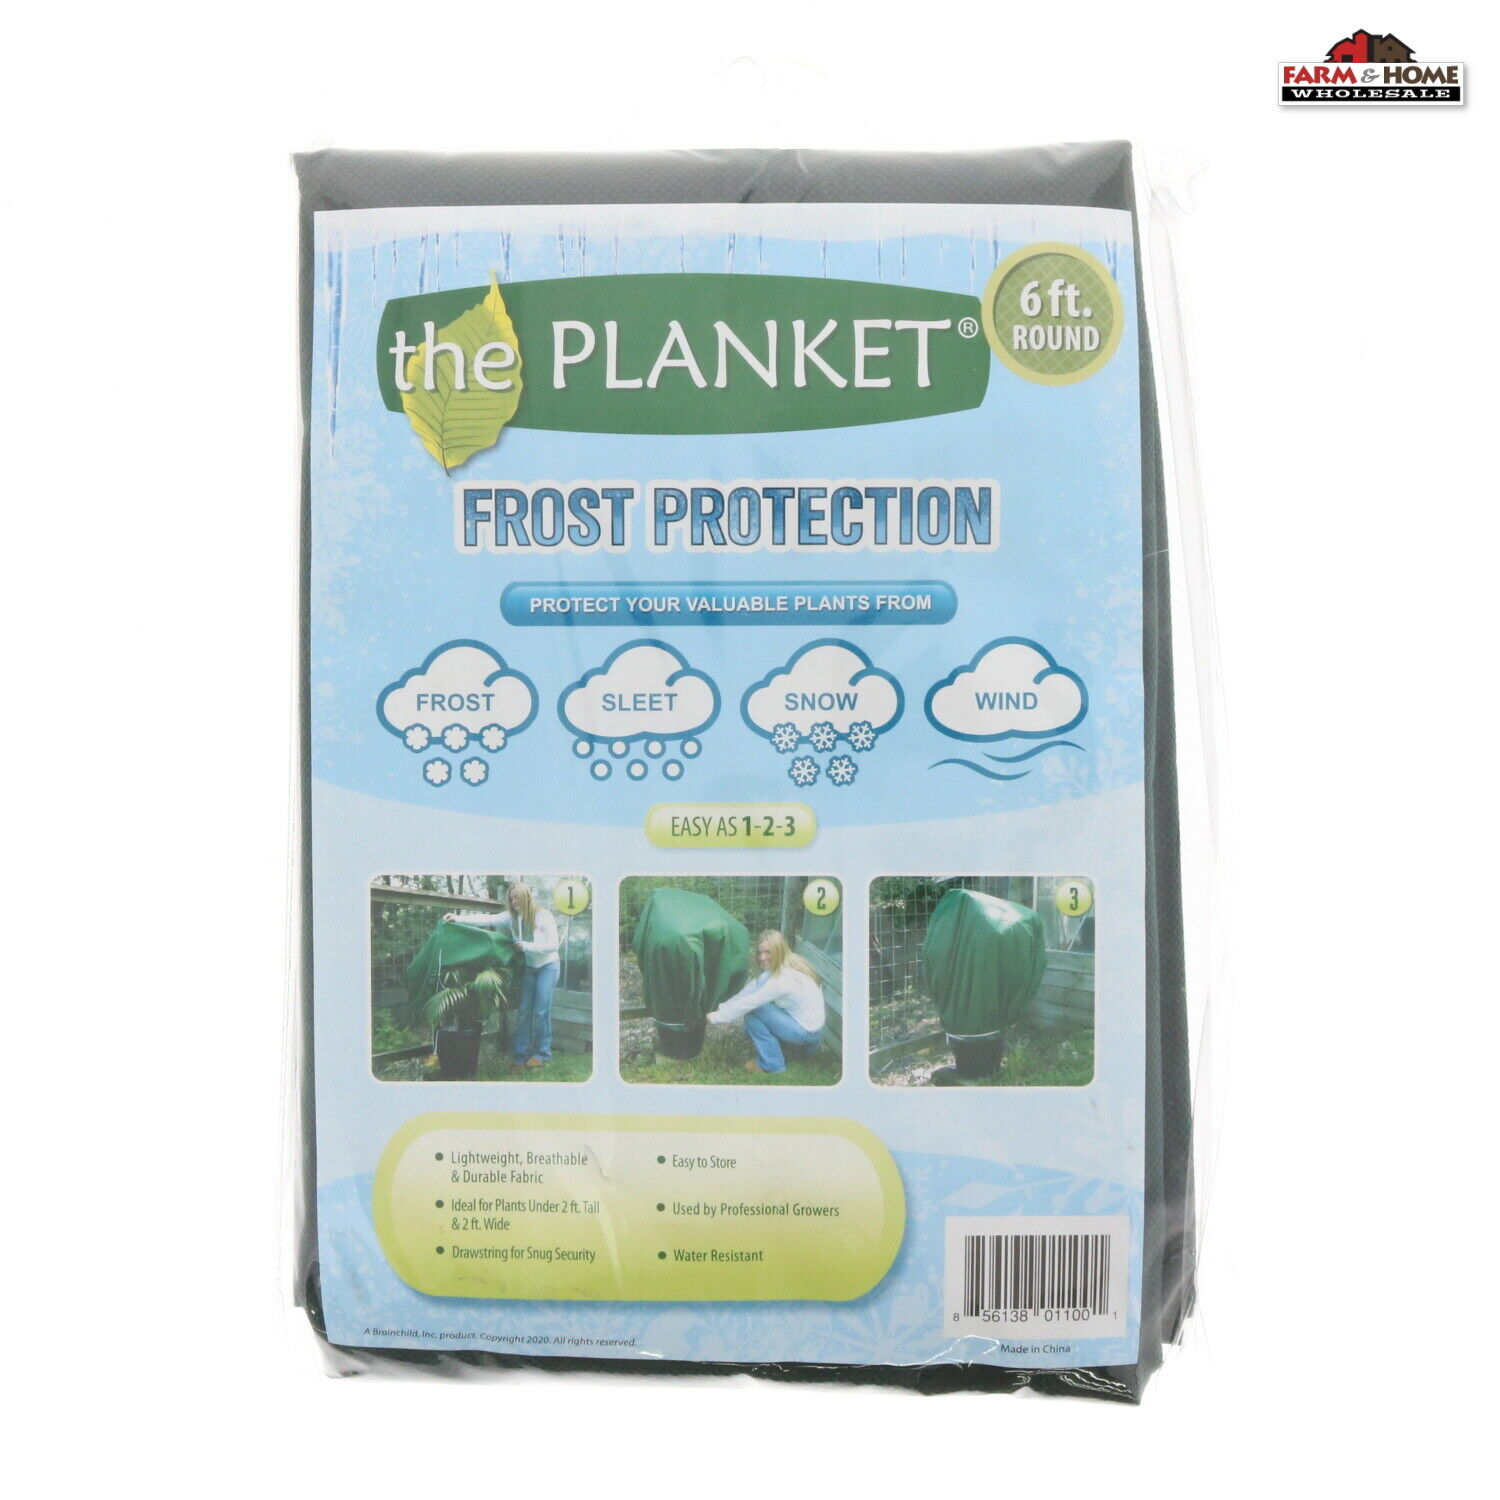 (2) The Planket Frost Protection Plant Cover 6 ft Round ~ NEW